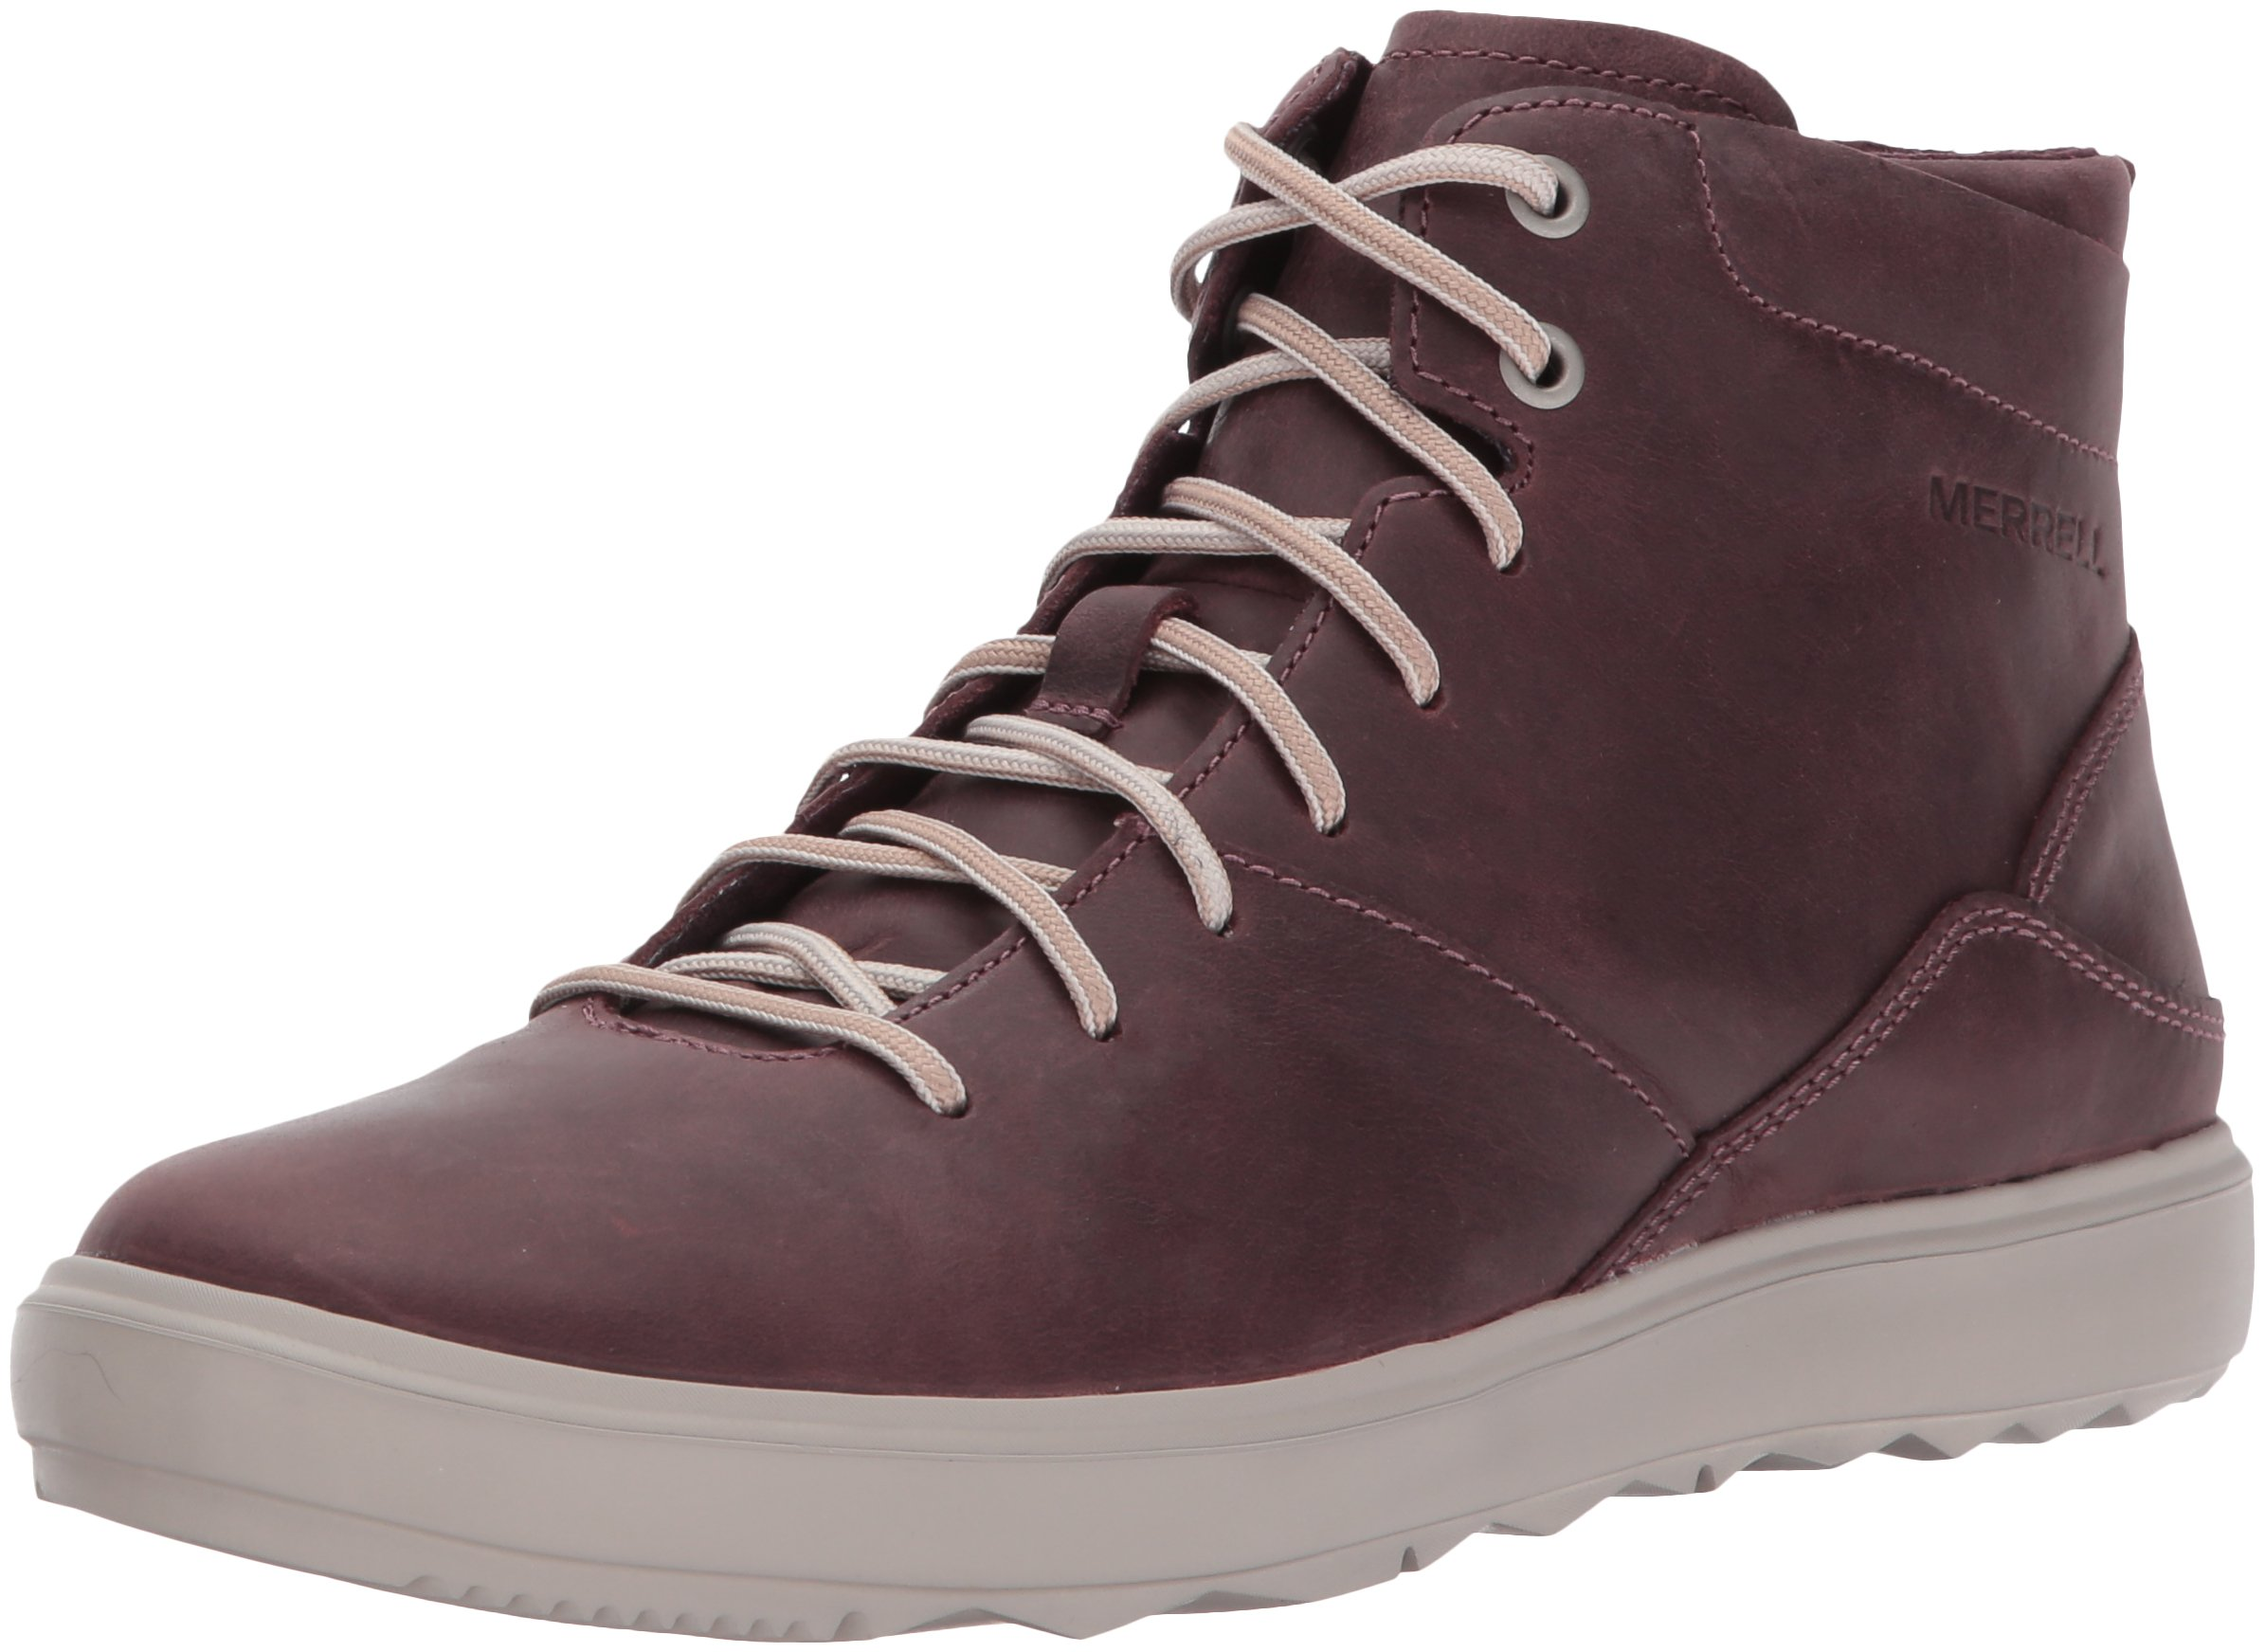 Merrell Women's Around Town Mid Lace Fashion Sneaker, Huckleberry, 8.5 M US